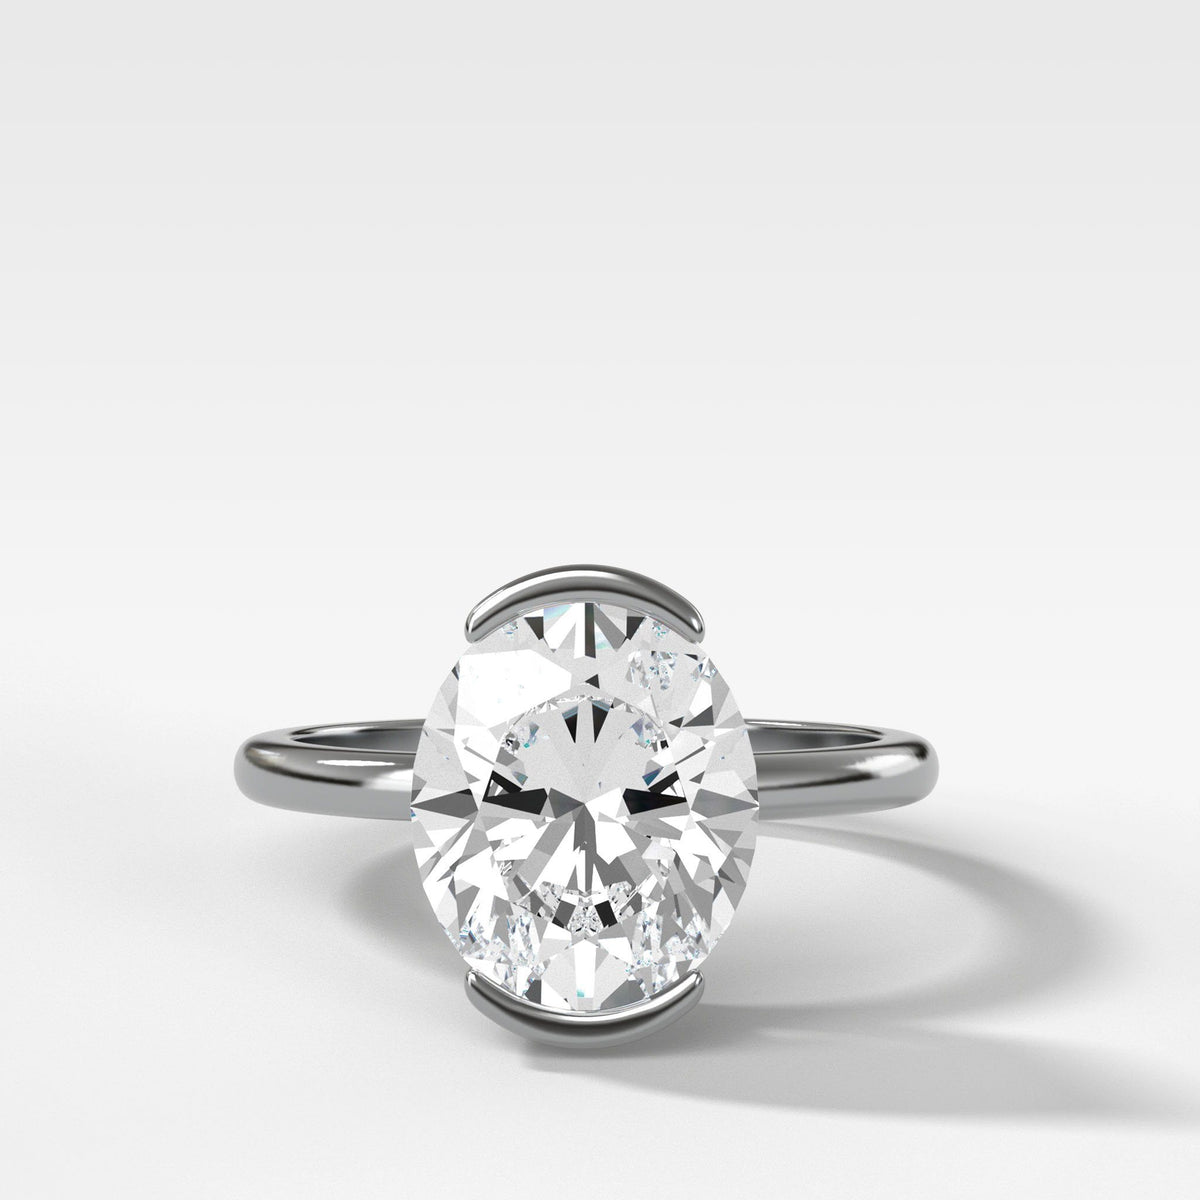 North South Half Bezel Solitaire Engagement Ring With Oval Cut In White Gold By Good Stone